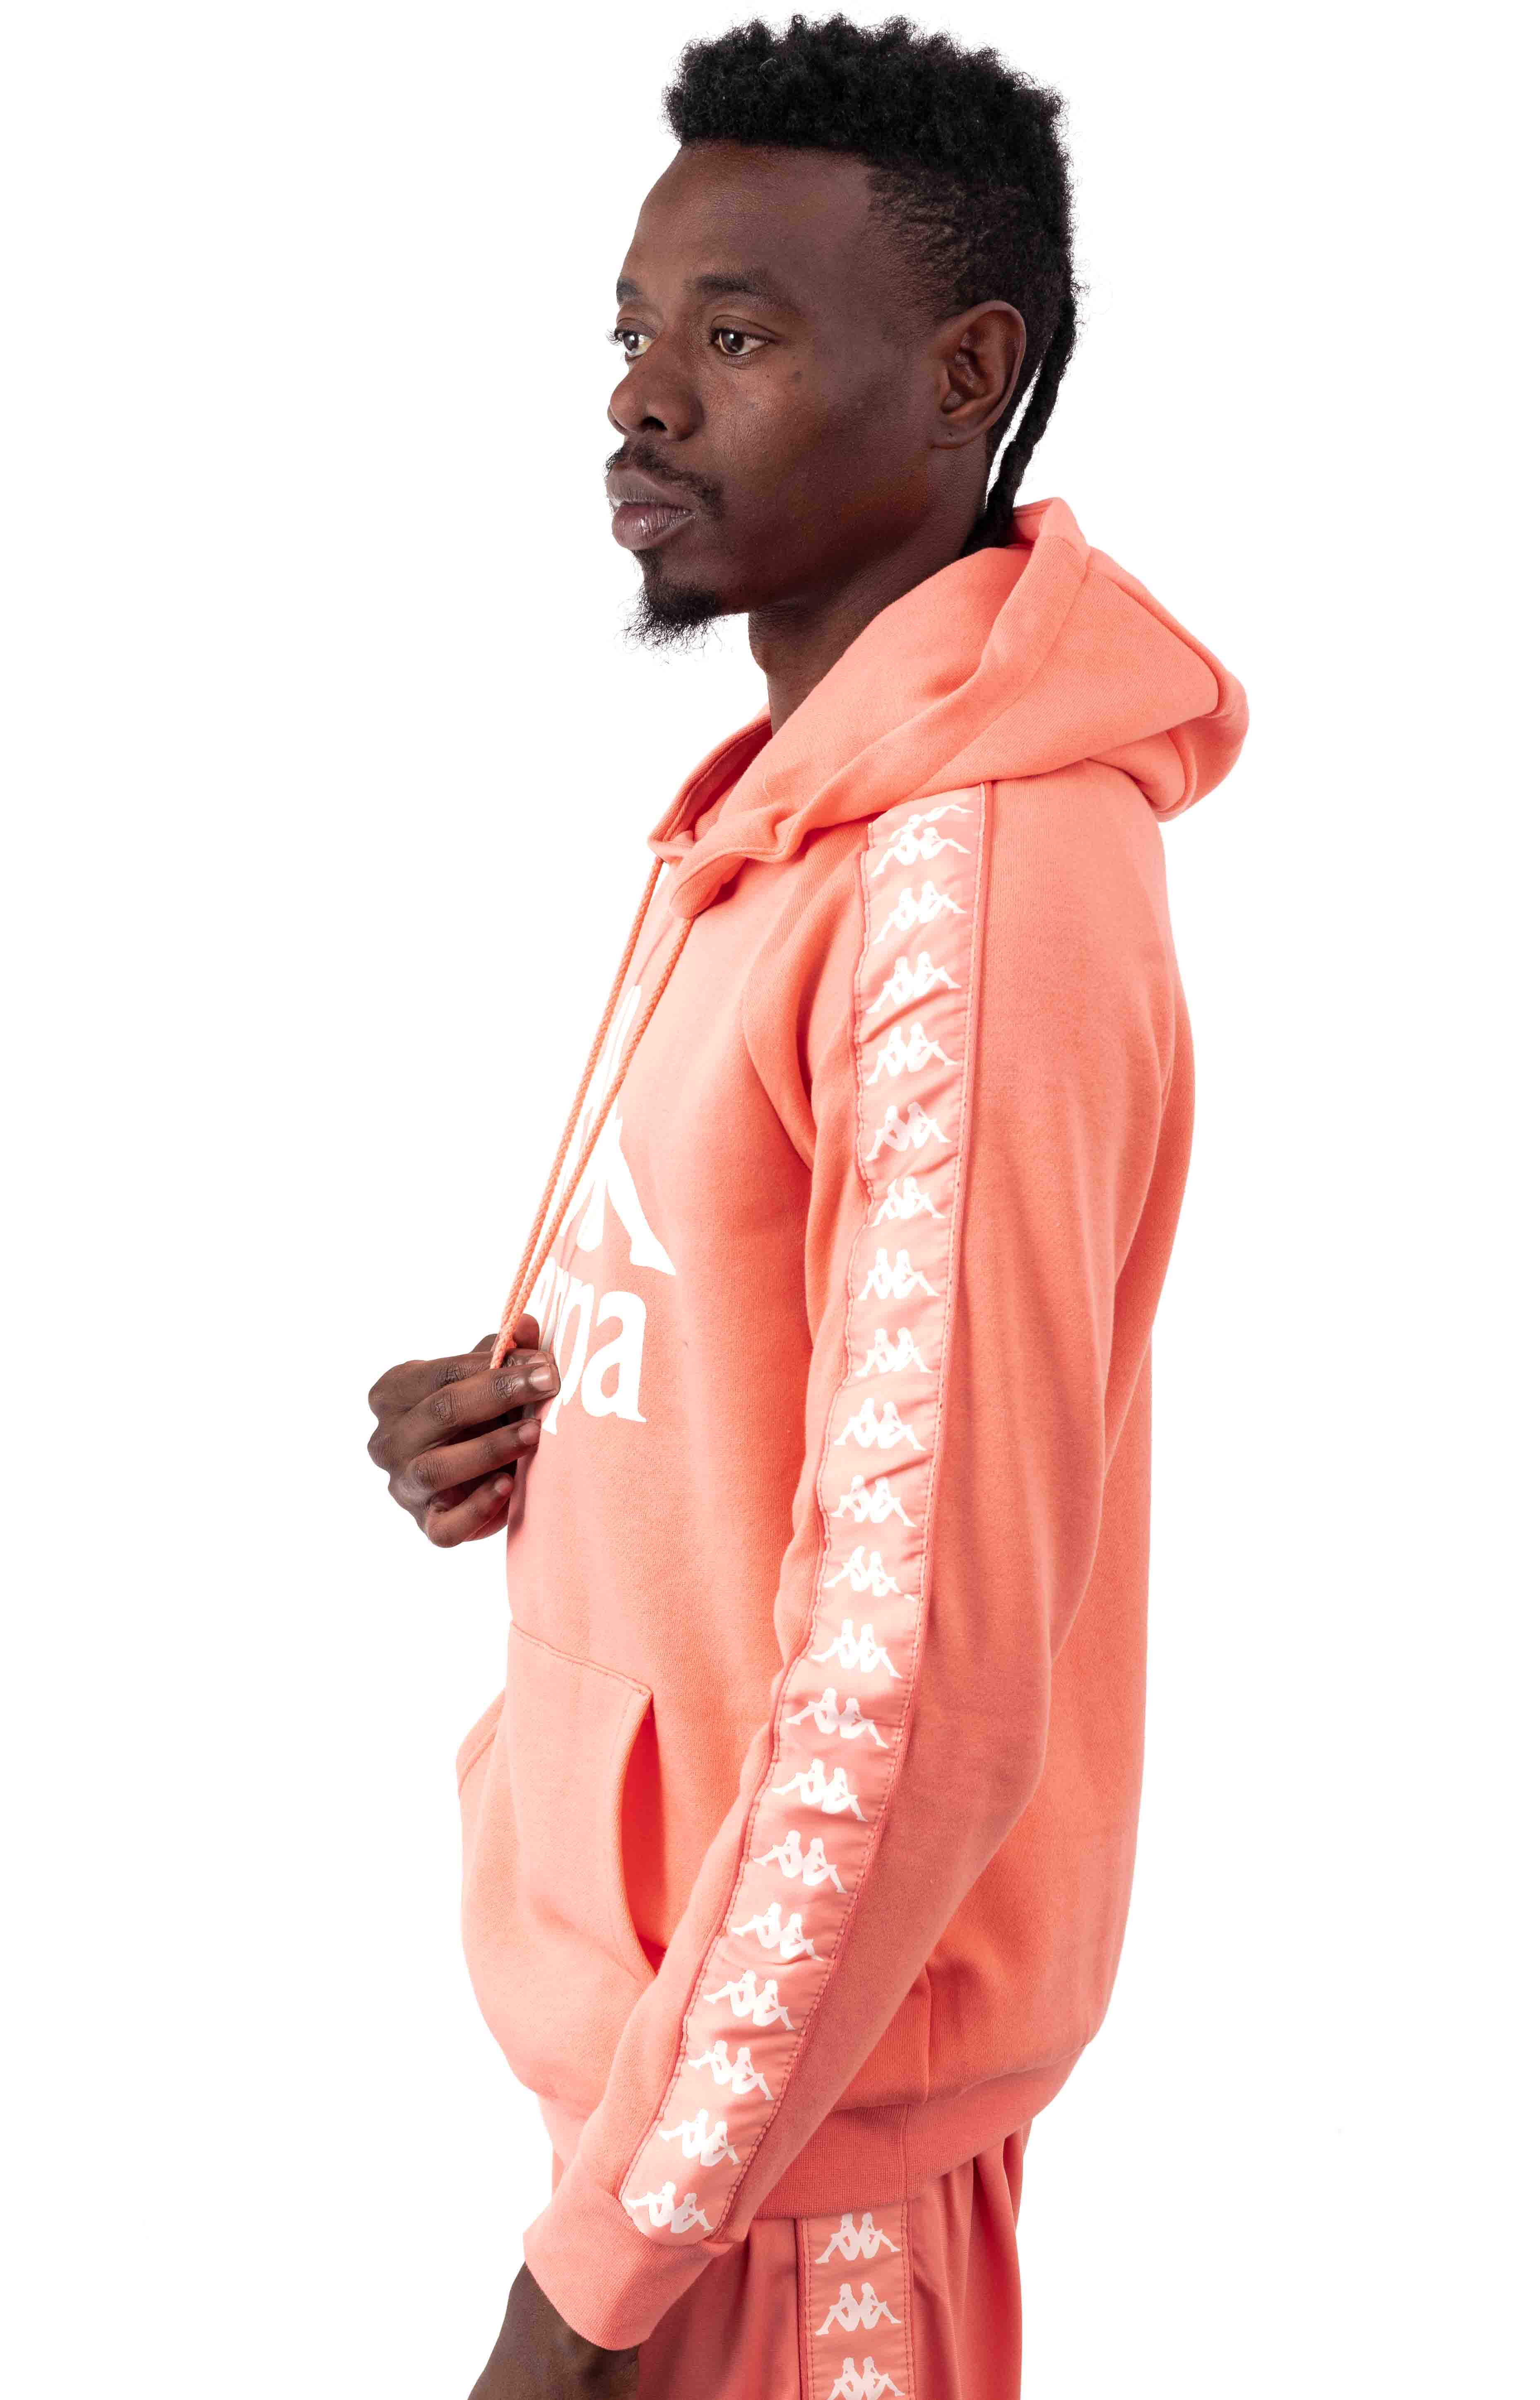 Authentic Hurtado Pullover Hoodie - Pink/White 2